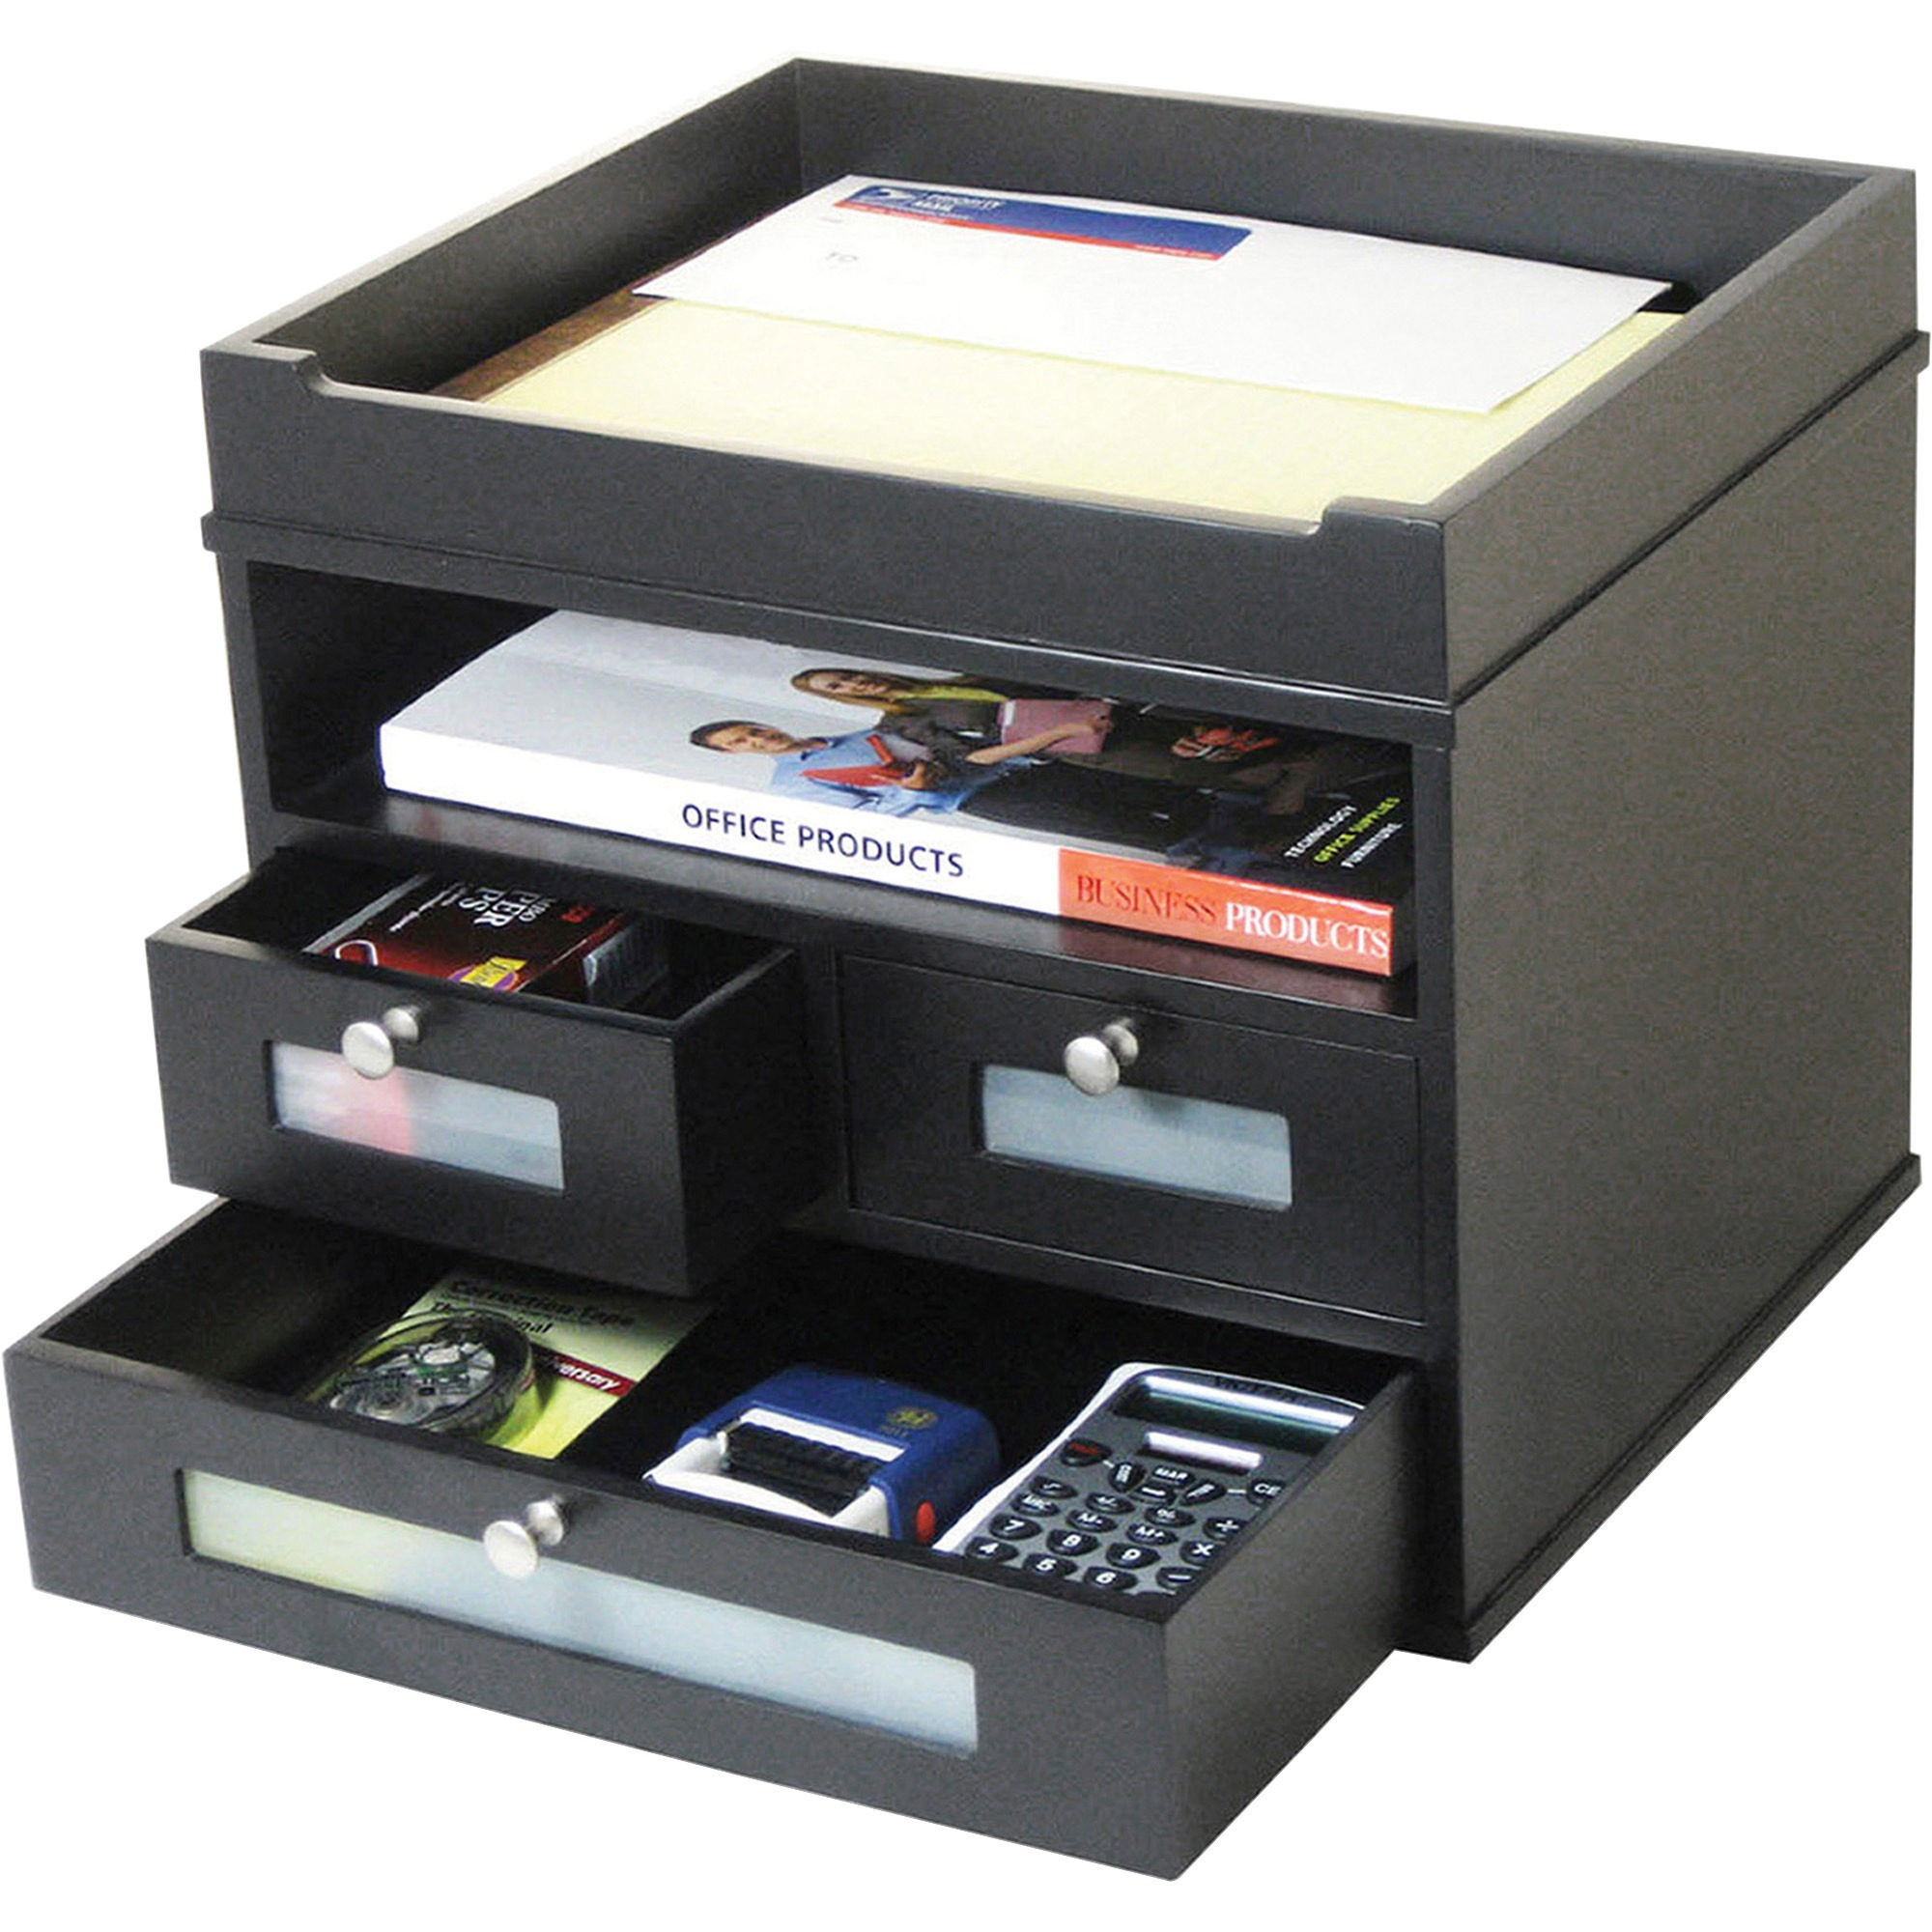 Victor Midnight Black Collection Tidy Tower Organizer 10 9 Height X 12 8 Width 6 Depth Desktop Wood Faux Leather 1each